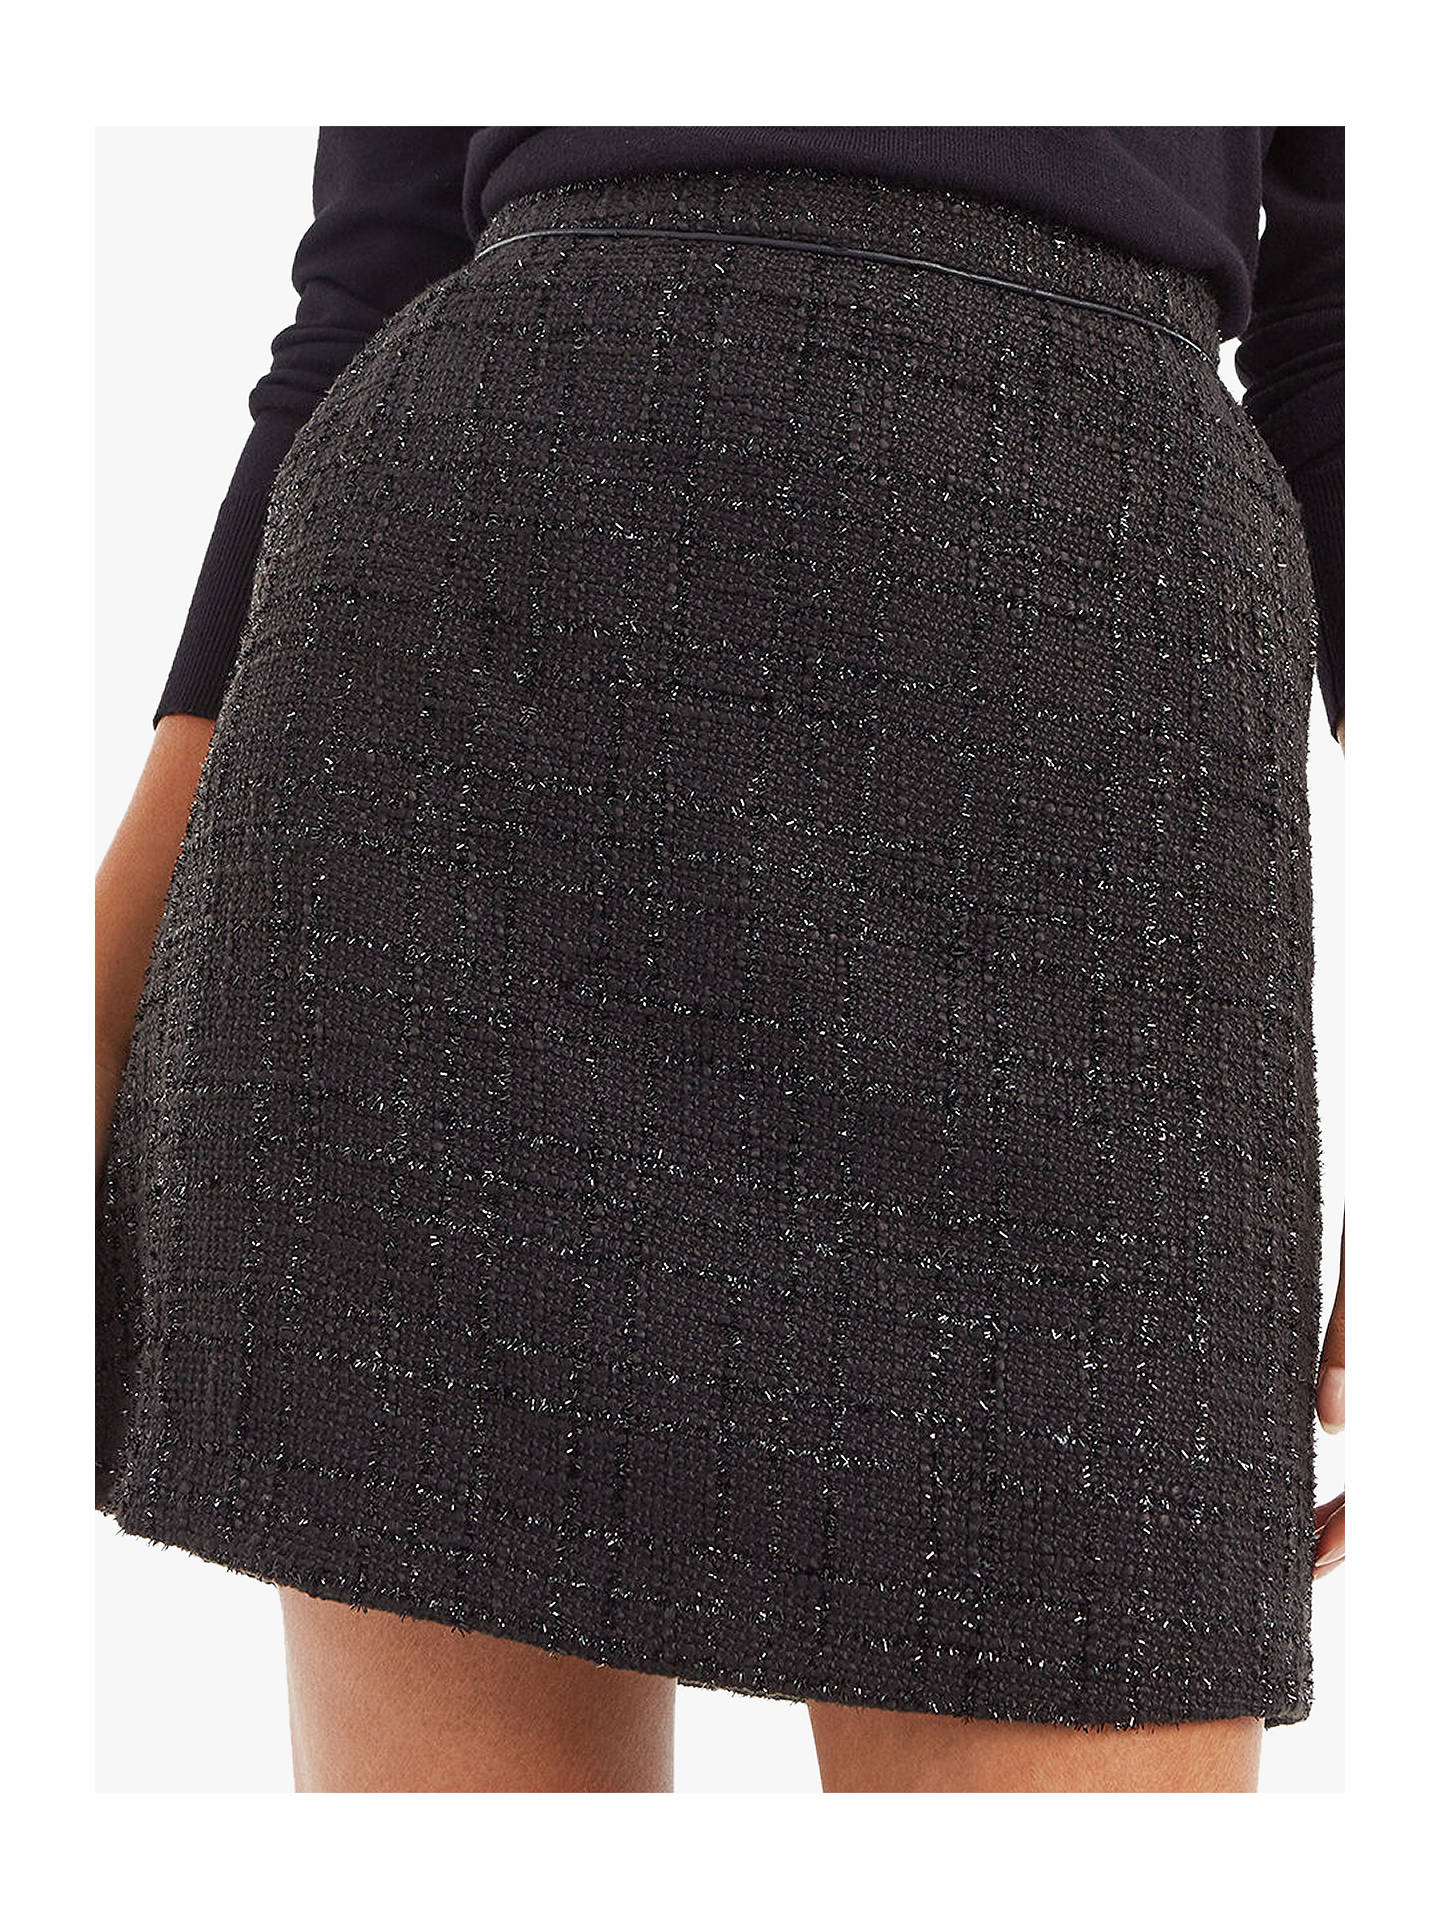 32236daf0fcb0e Buy Oasis Sparkle Tweed Skirt, Black, 10 Online at johnlewis.com ...